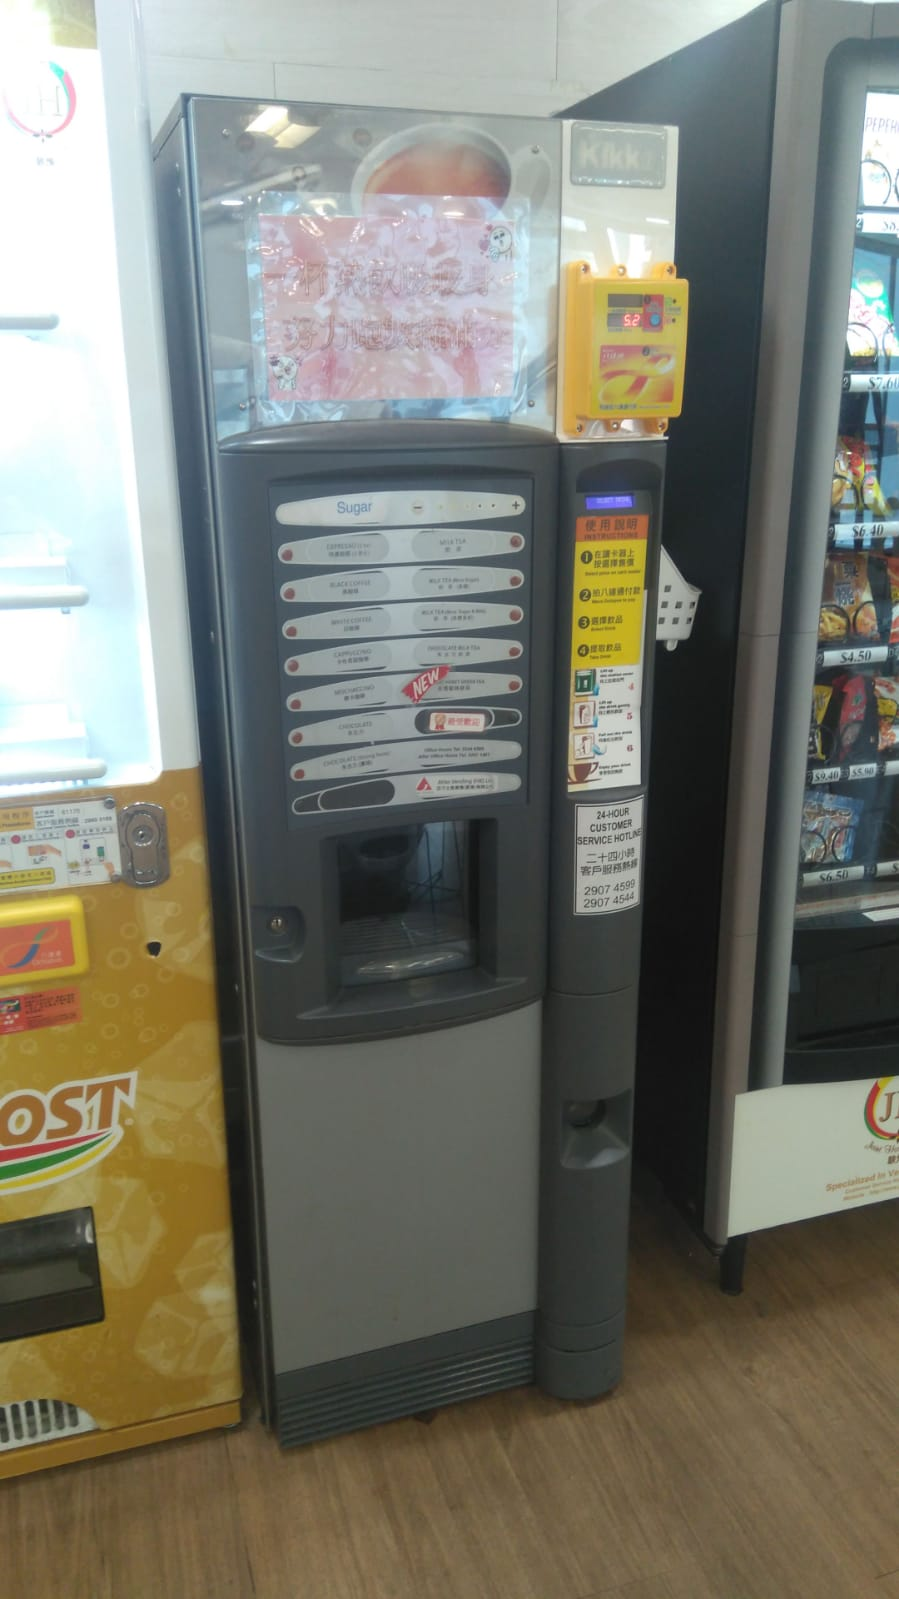 Freshup, vending machine hk, interactive, food, beverage, smart retail, convenient, vending services, professional, corporations, coffee machine, hot drinks, PCCW